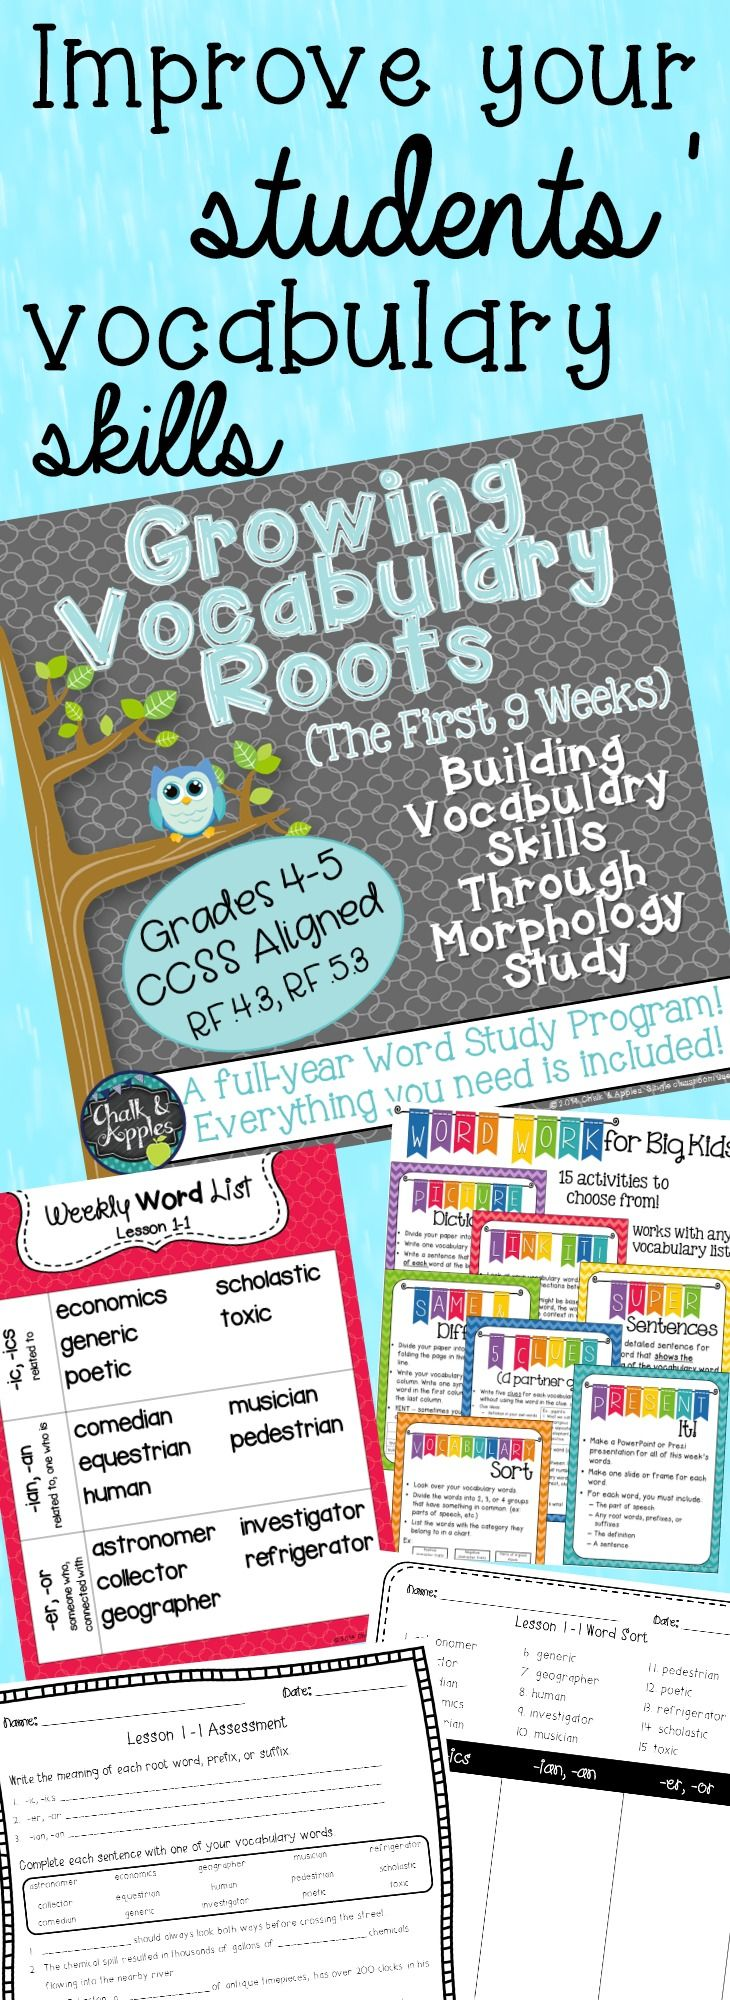 Vocabulary Roots Word Study for Grades 5-6 - Unit 1 | Teaching ...